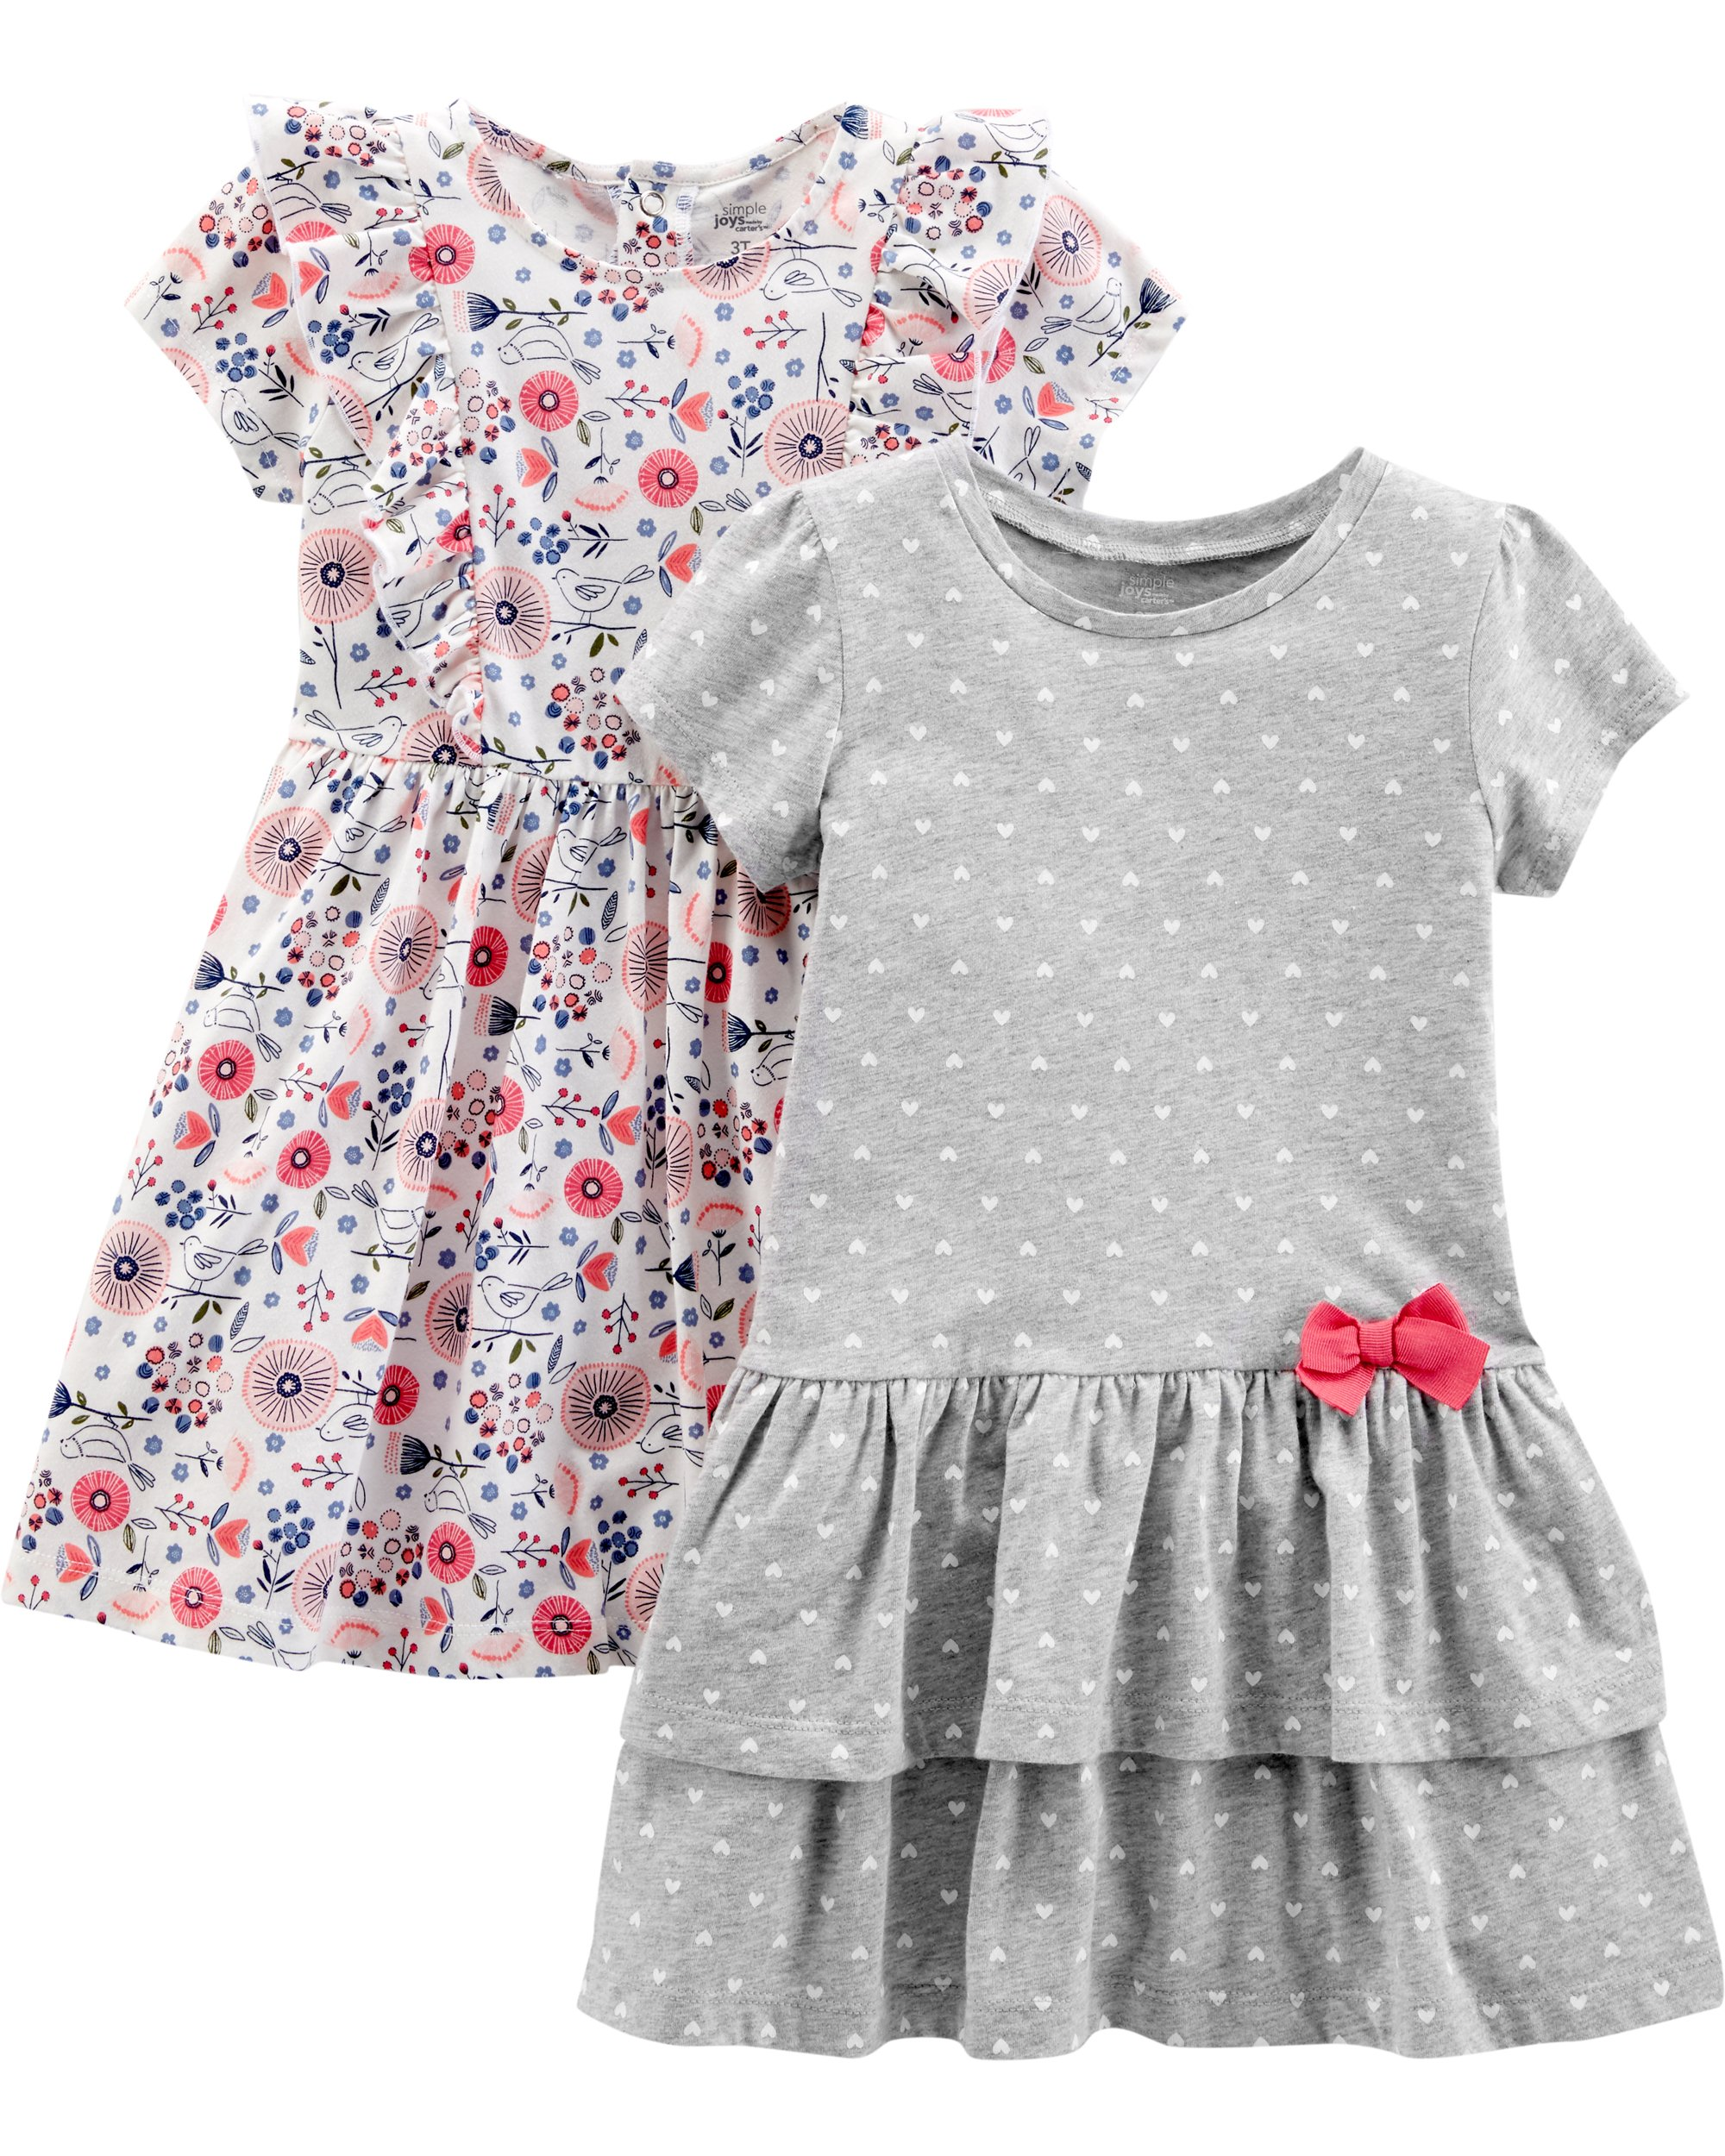 0a6343d9148 Simple Joys by Carter's Baby and Toddler Girls' 2-Pack Short-Sleeve and